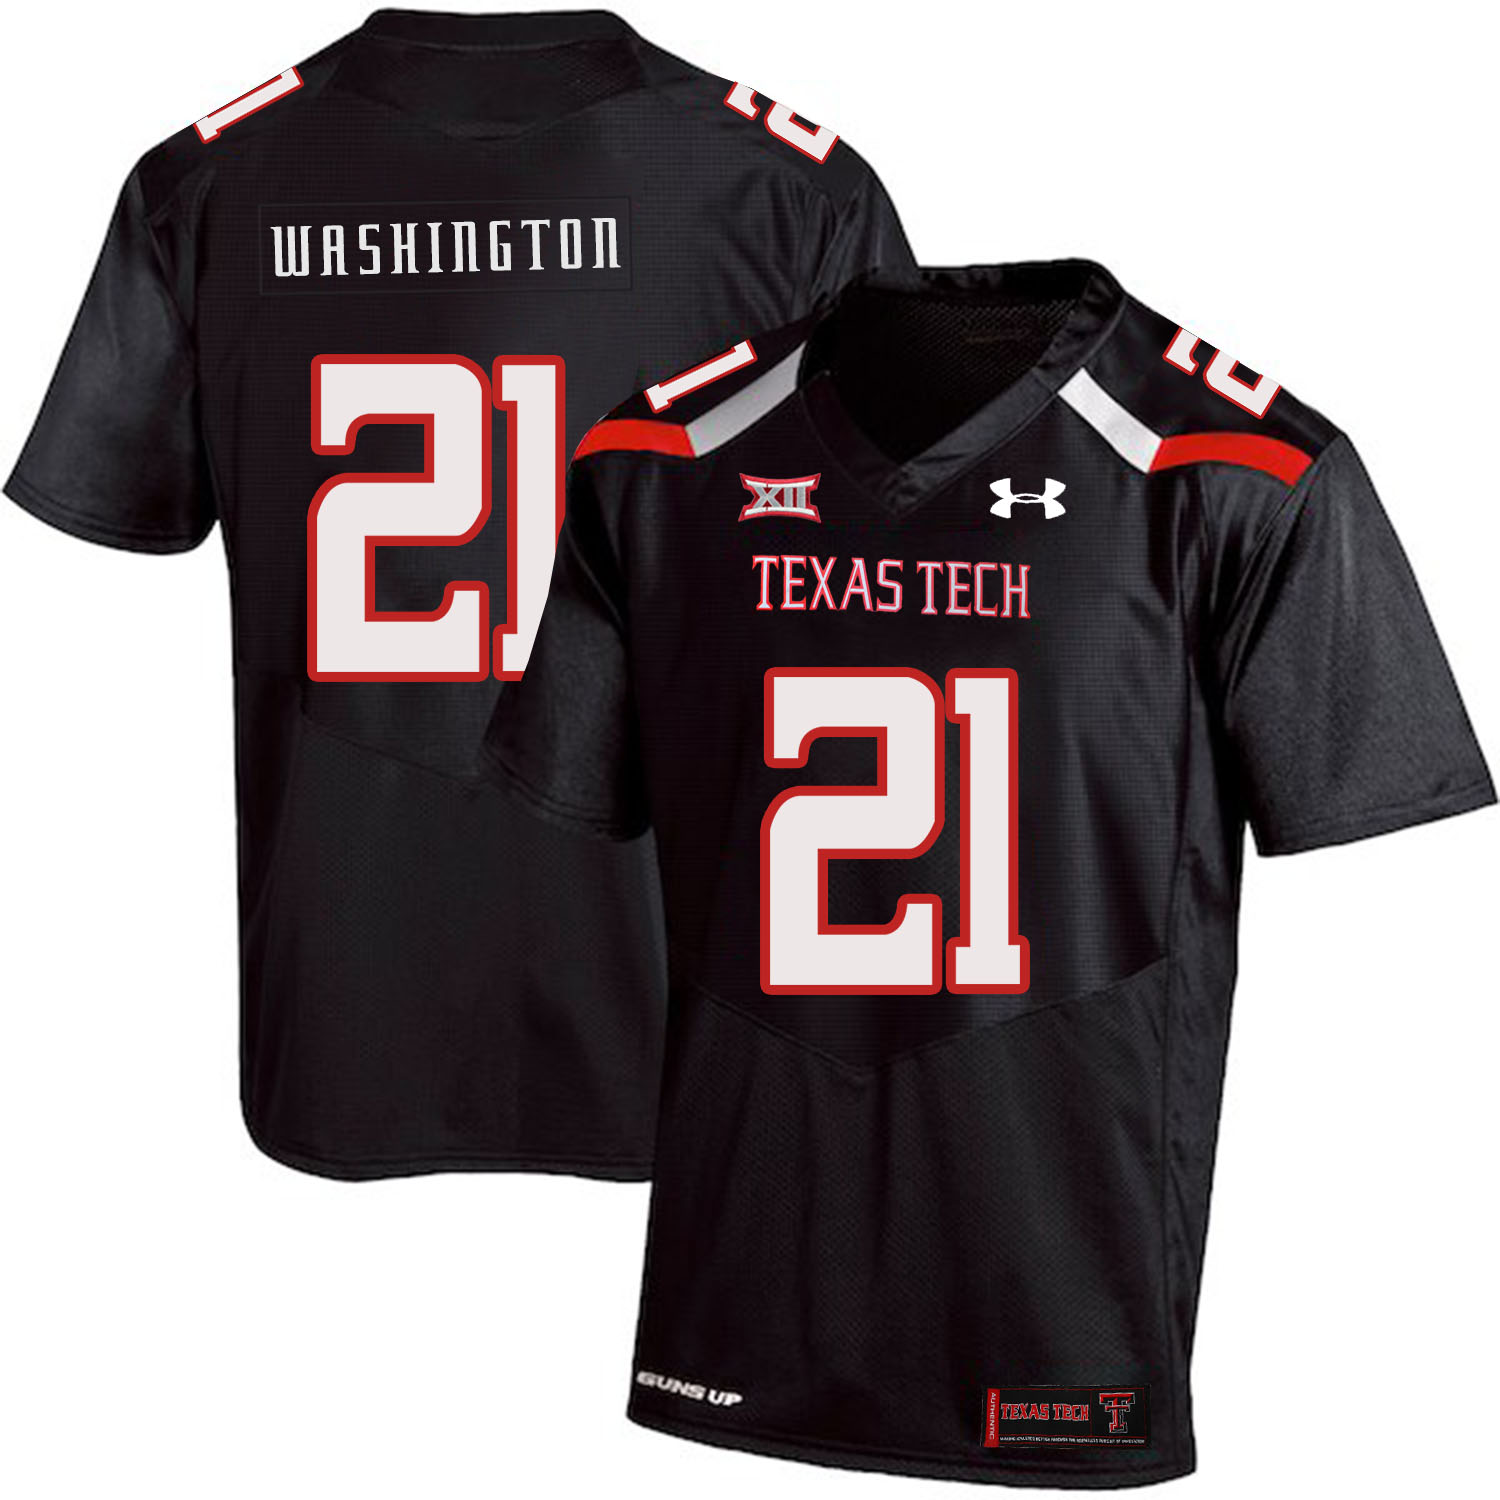 Texas Tech Red Raiders 21 DeAndre Washington Black College Football Jersey